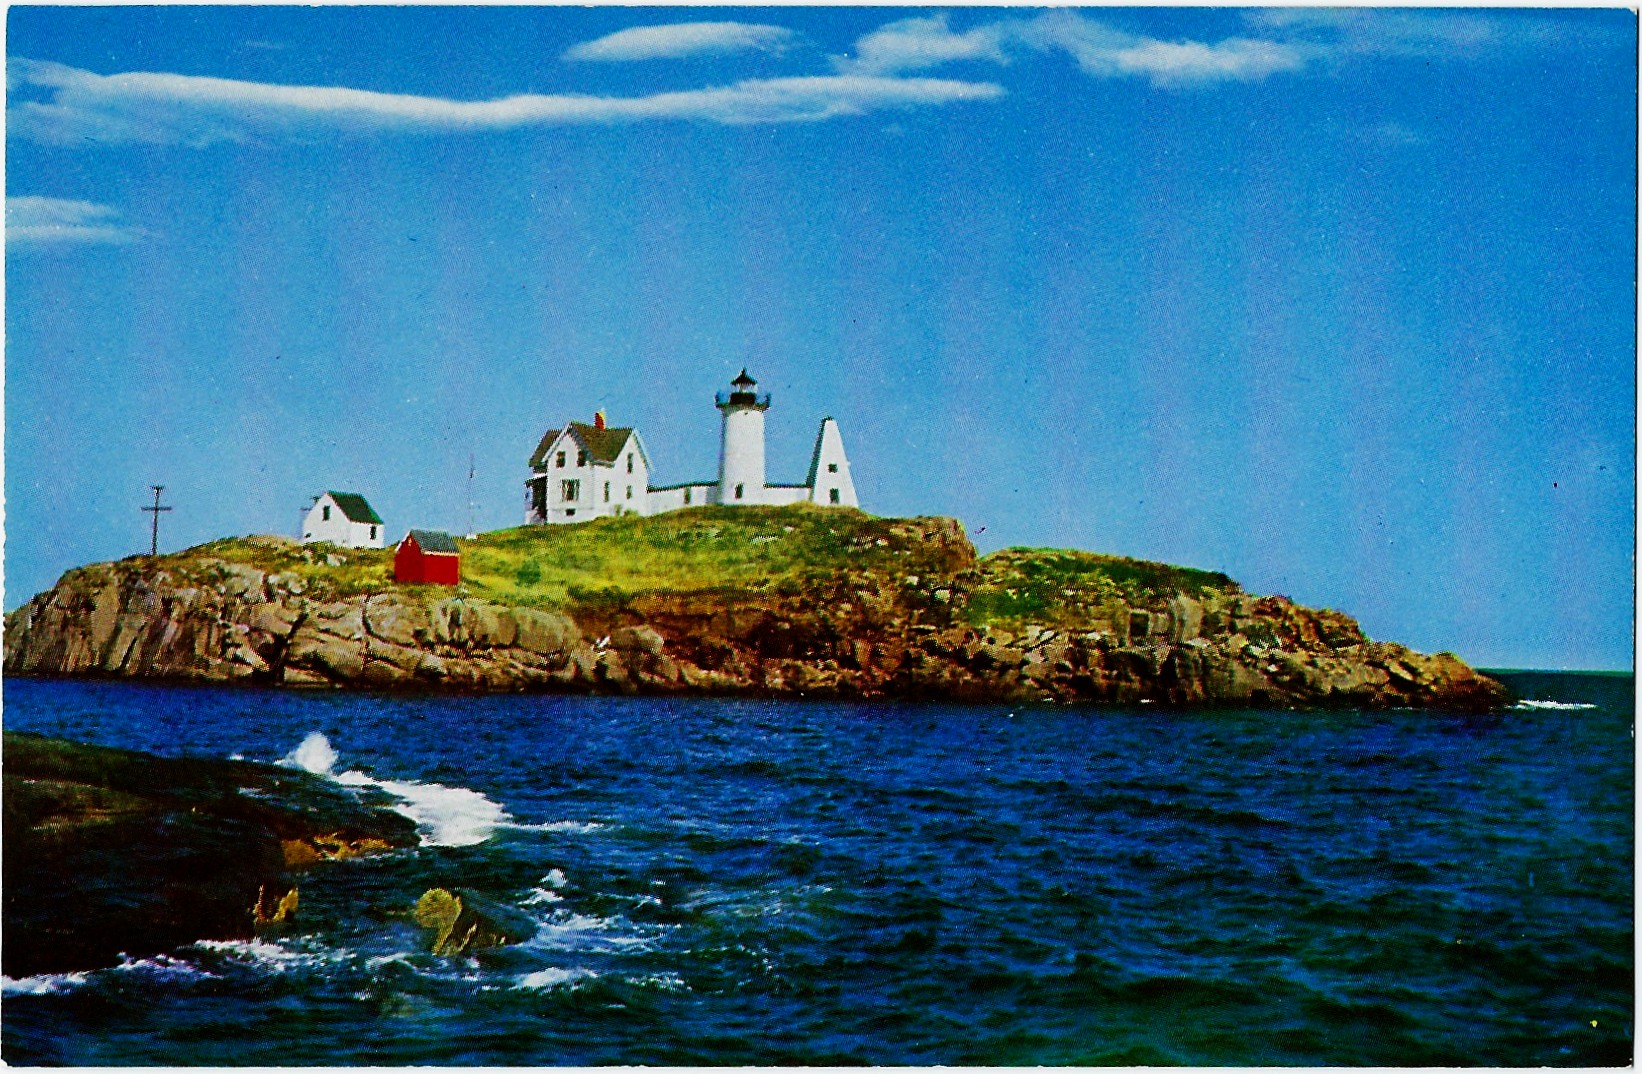 NUBBLE LIGHTHOUSE YORK MAINE POSTCARD ME581 (ME) [LHPCV0002] - $2.36 ...